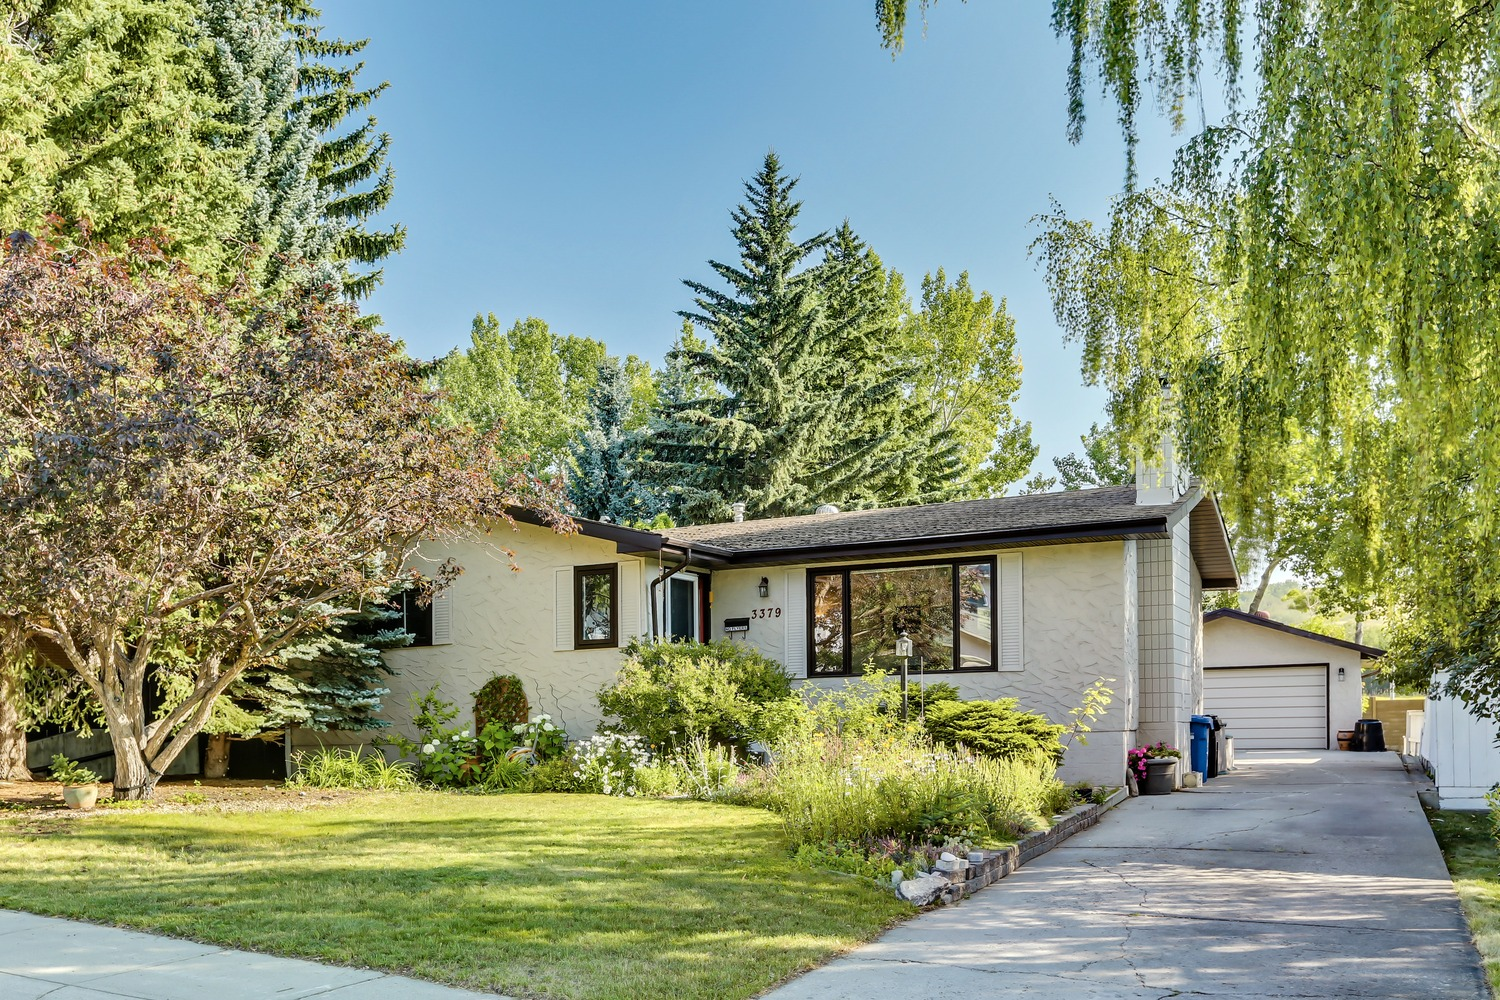 Just listed today in Brentwood, NW Calgary